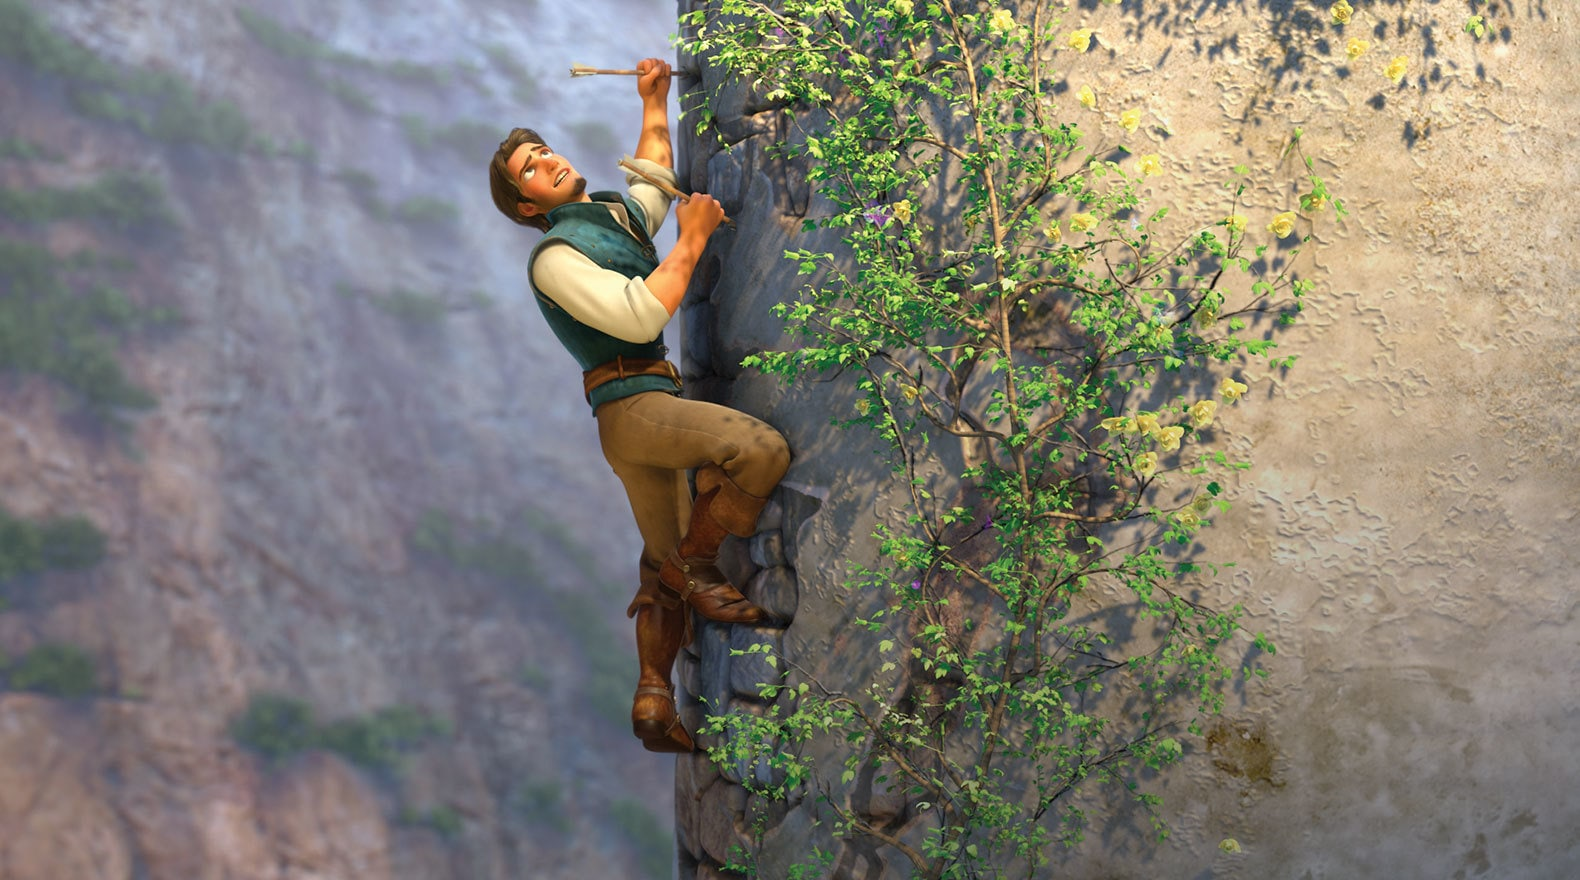 Flynn Rider discovers more than just a hideout when he climbs up the wall.